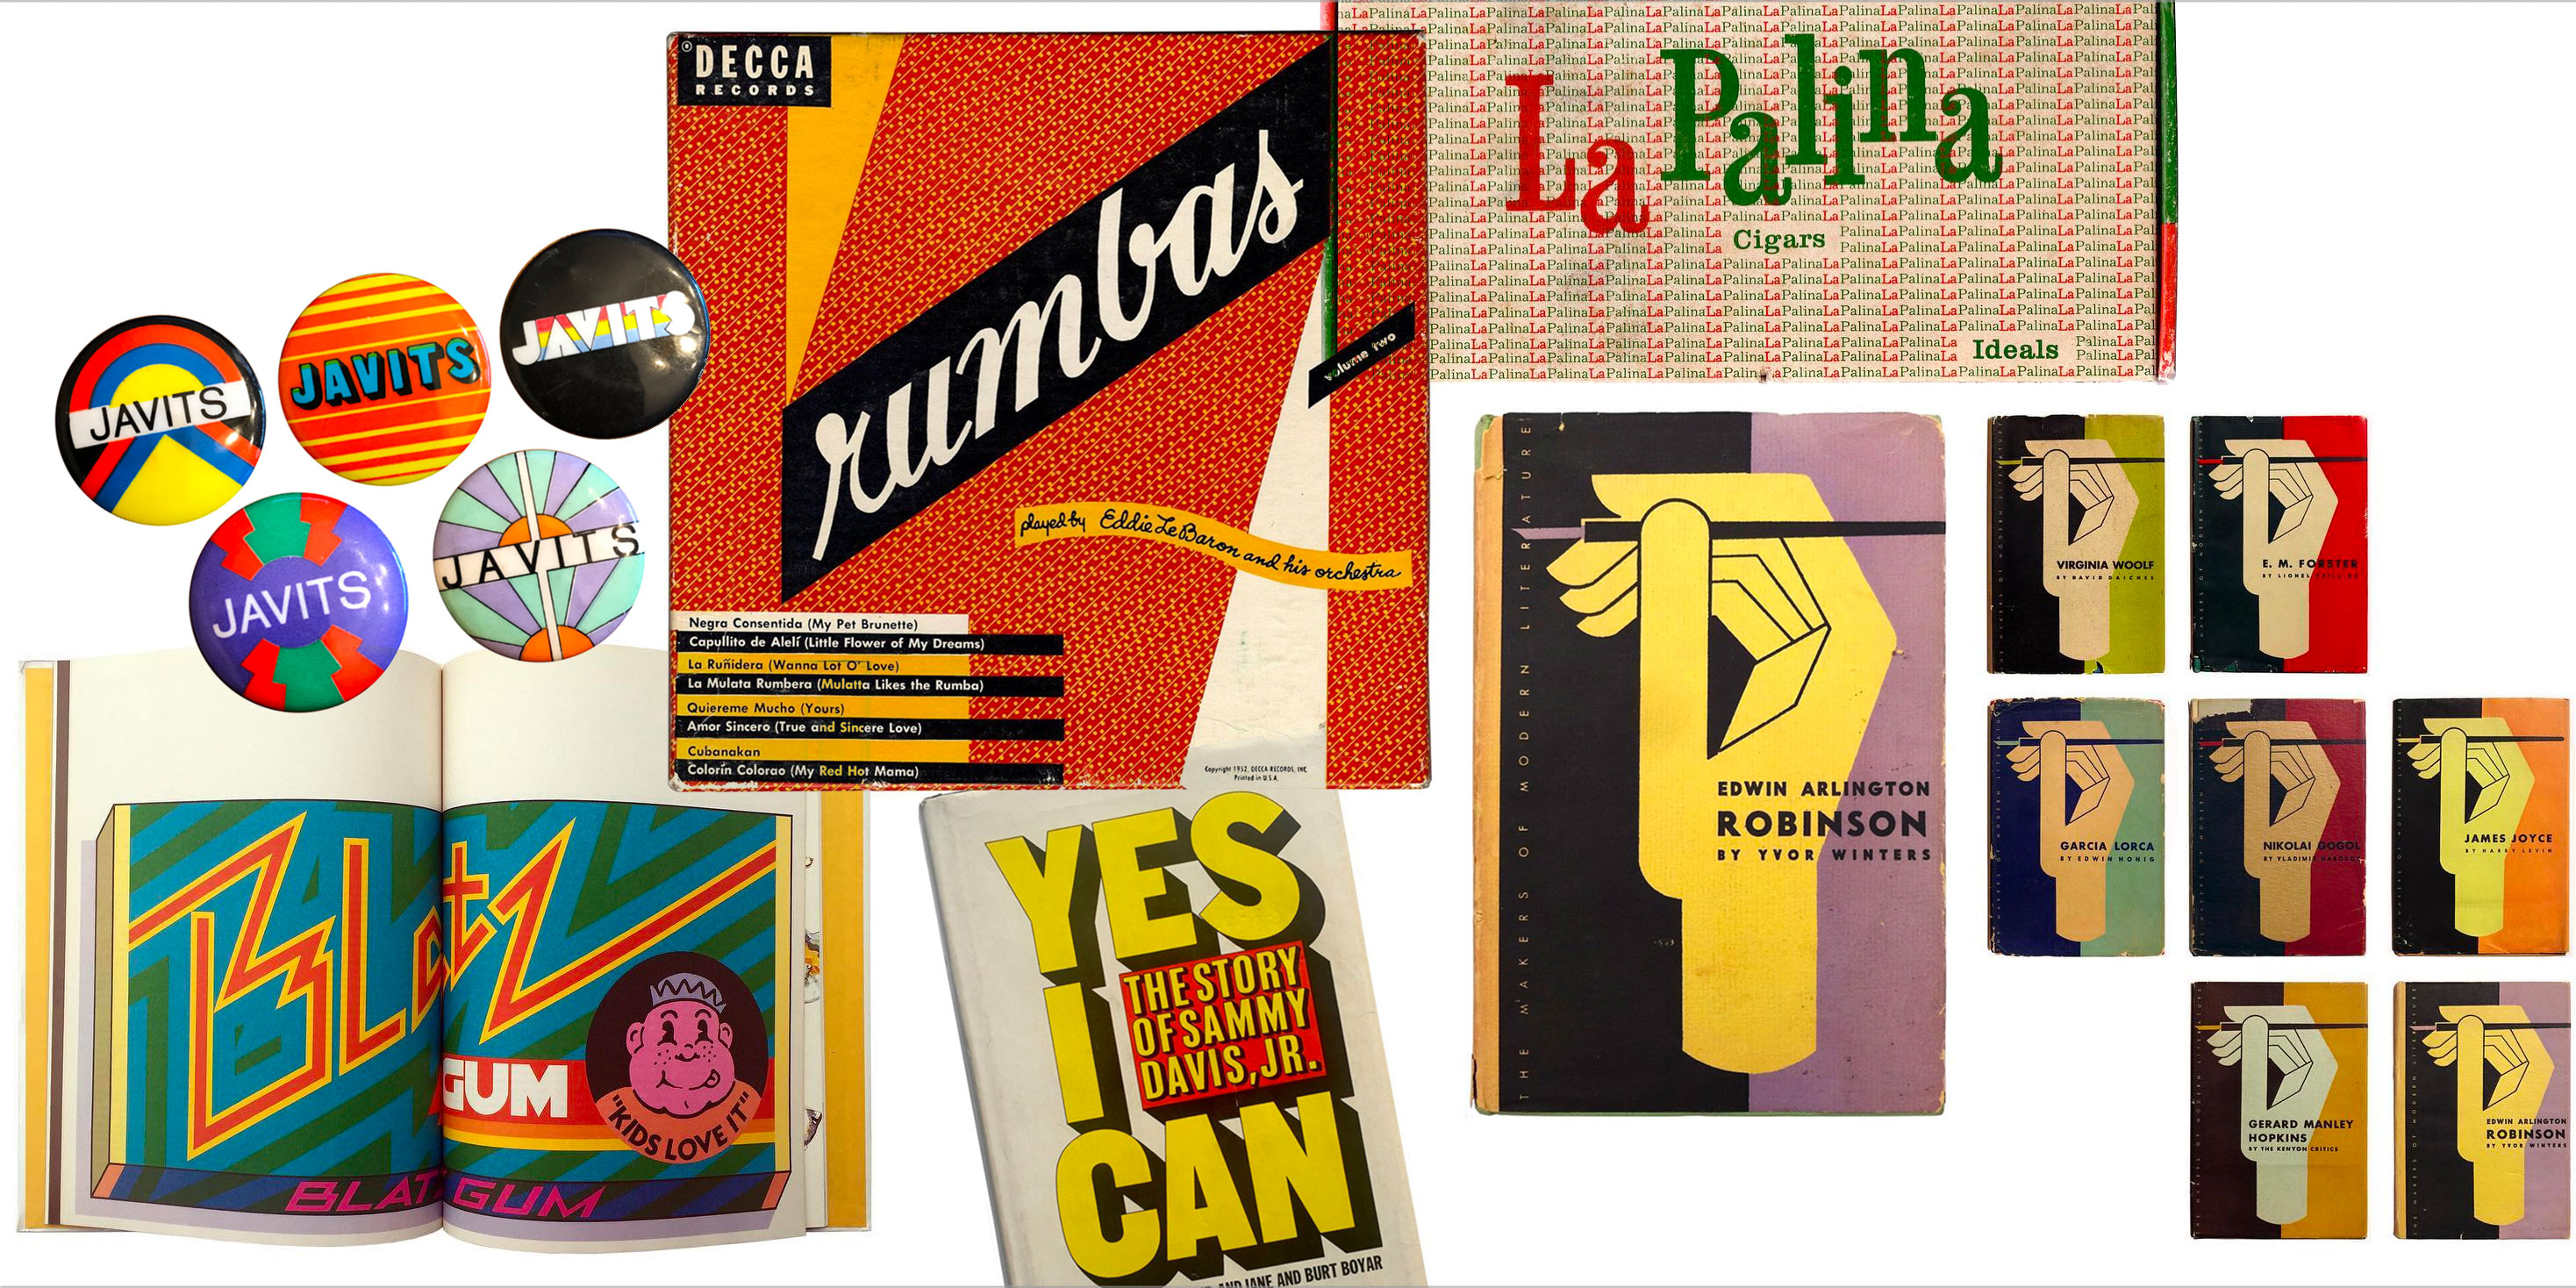 Objects collected by Scott Lindberg, including designs by Milton Glaser, Seymour Chwast, Ladislav Sutnar, Herb Lubalin, Paul Rand, and Alvin Lustig